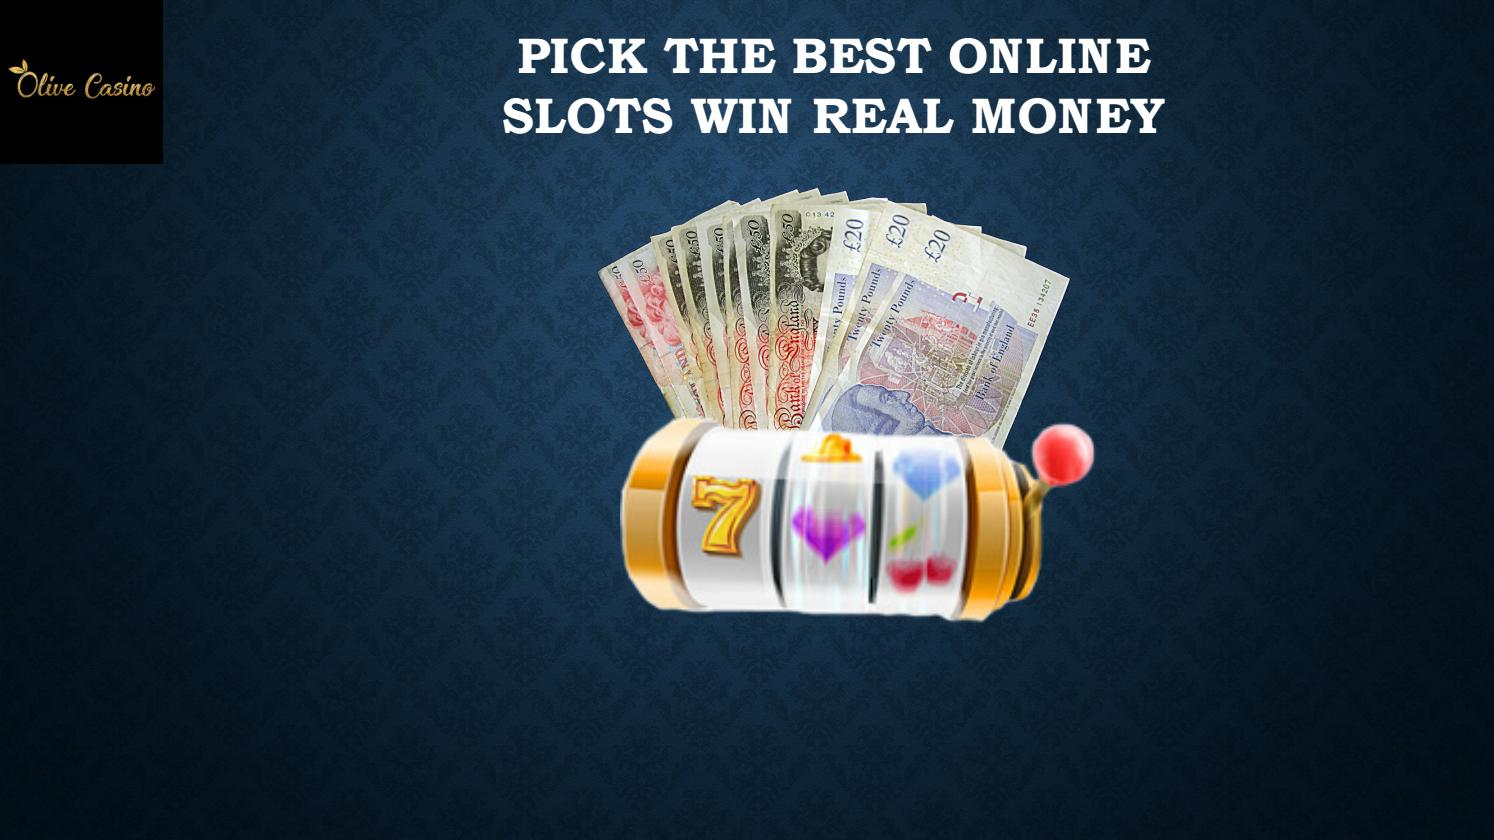 Pick The Best Online Slots Win Real Money By Olivecasino Issuu